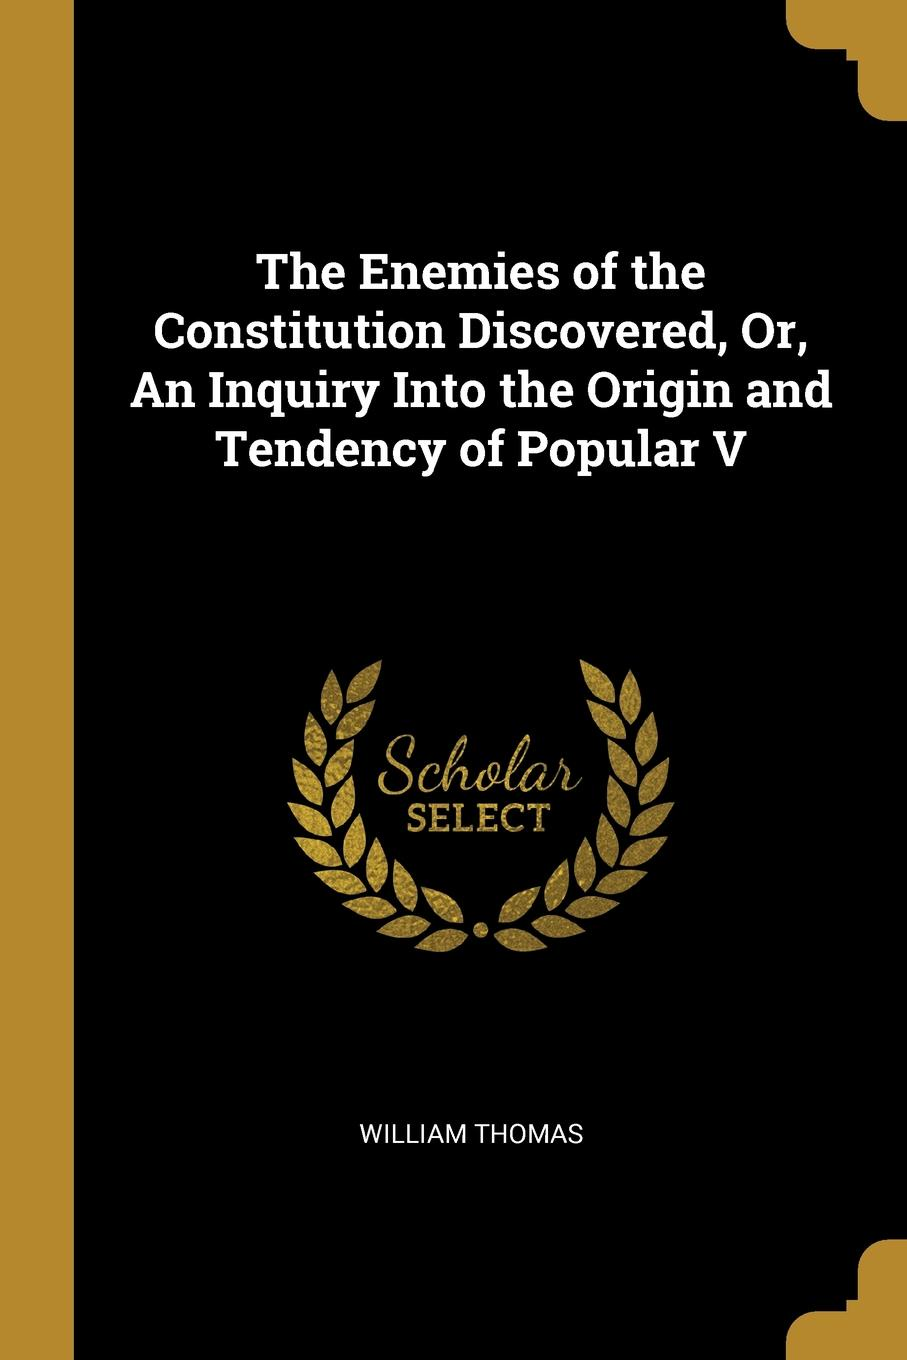 William Thomas. The Enemies of the Constitution Discovered, Or, An Inquiry Into the Origin and Tendency of Popular V